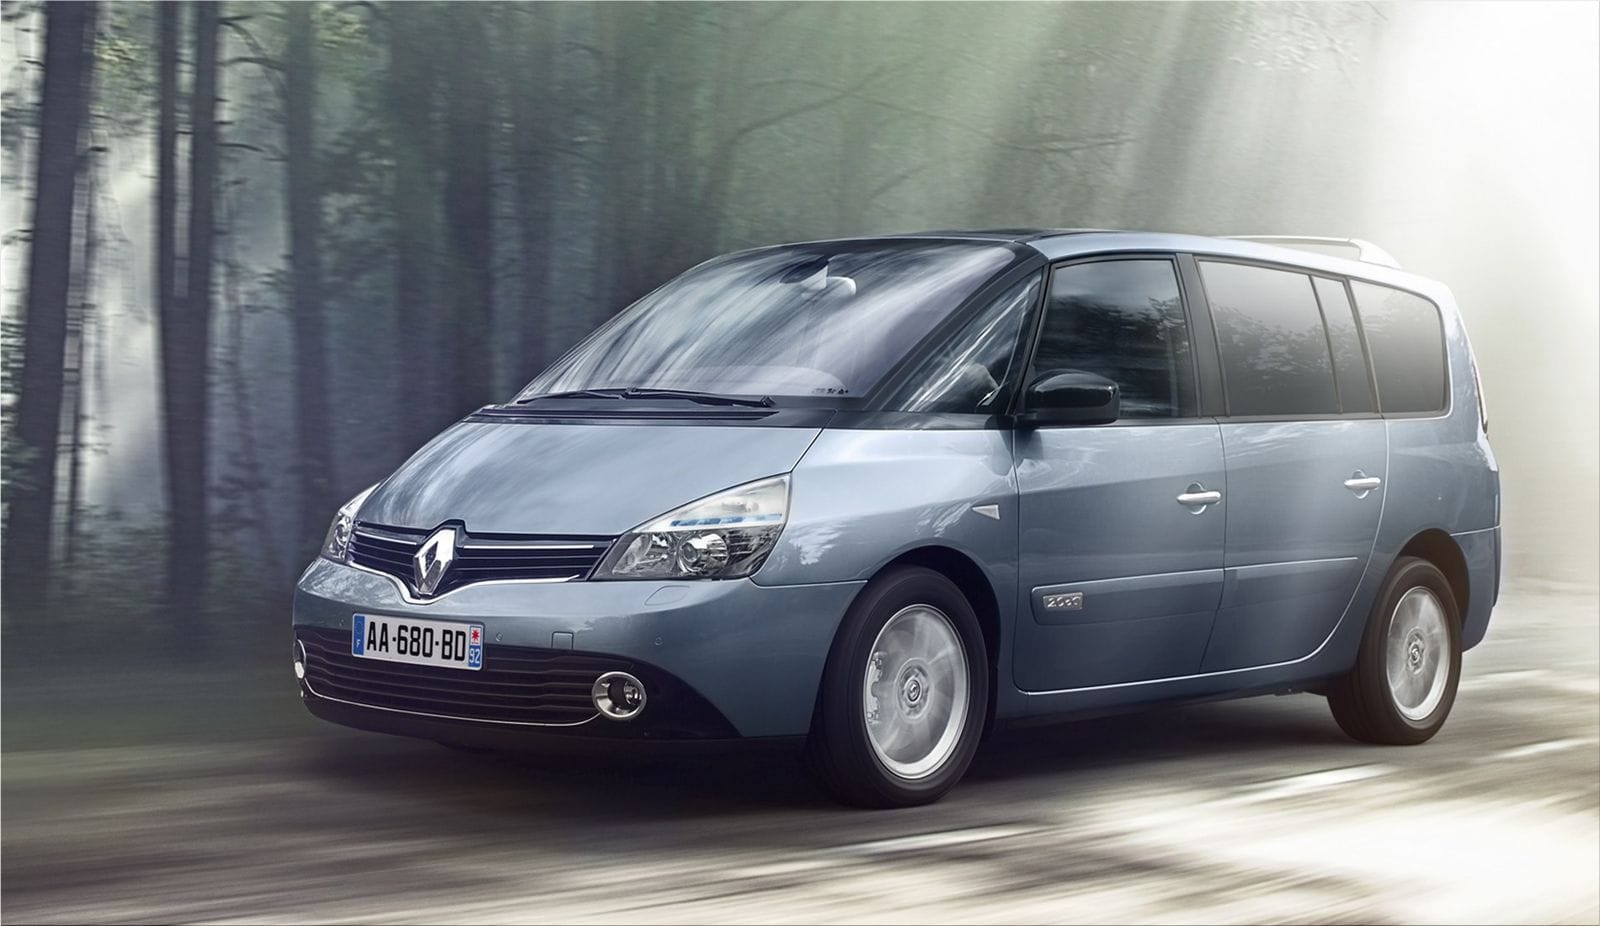 Renault Espace features Renault's new styling identity|Renault car